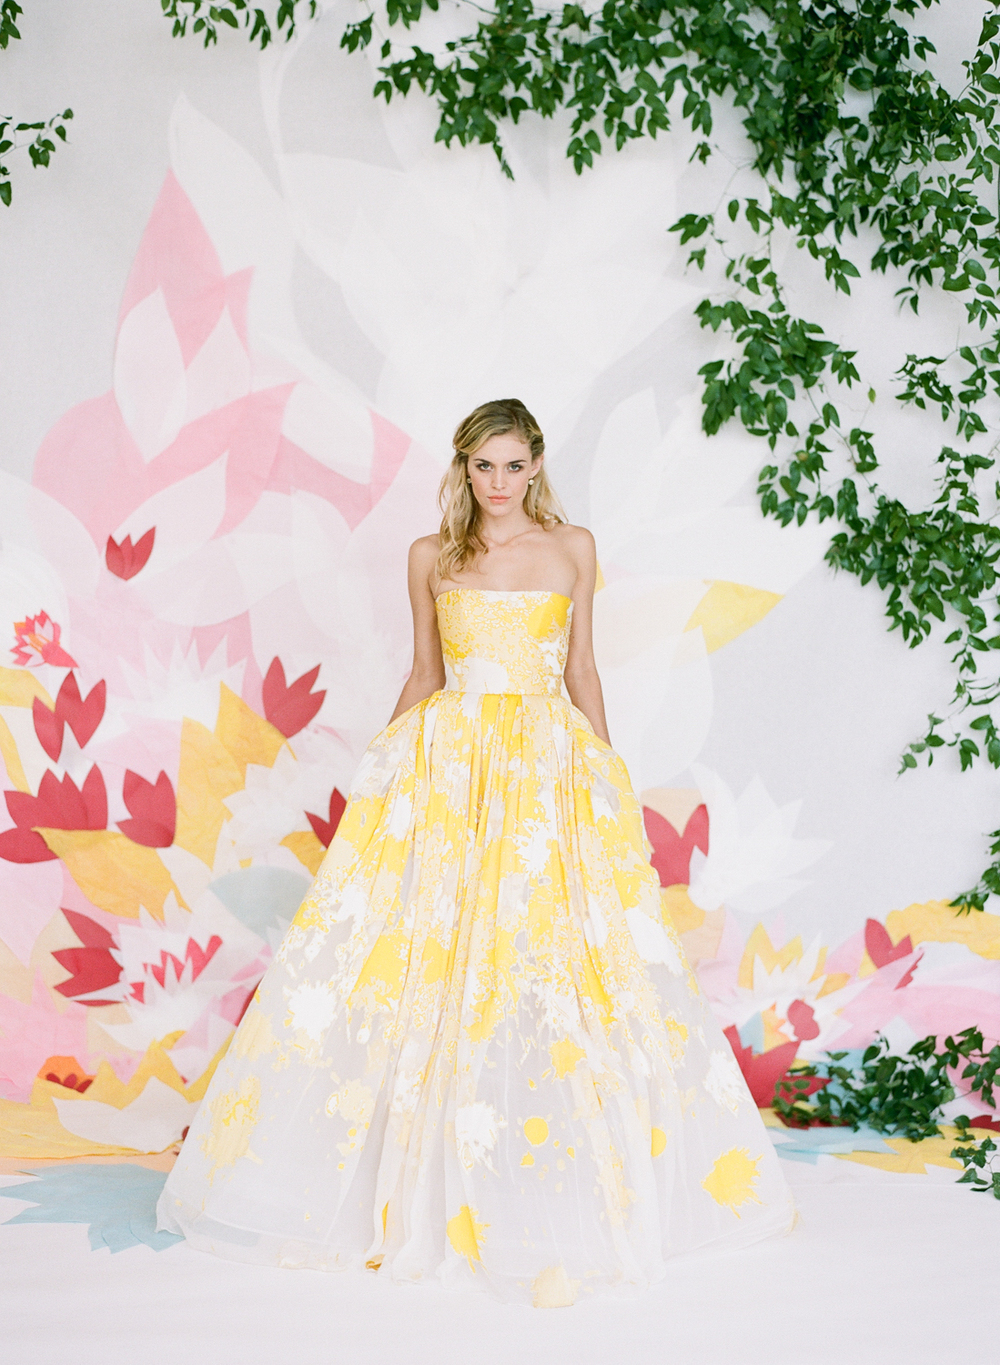 Splashy yellow strapless wedding gown, tissue paper floral backdrop; Sylvie Gil Photography